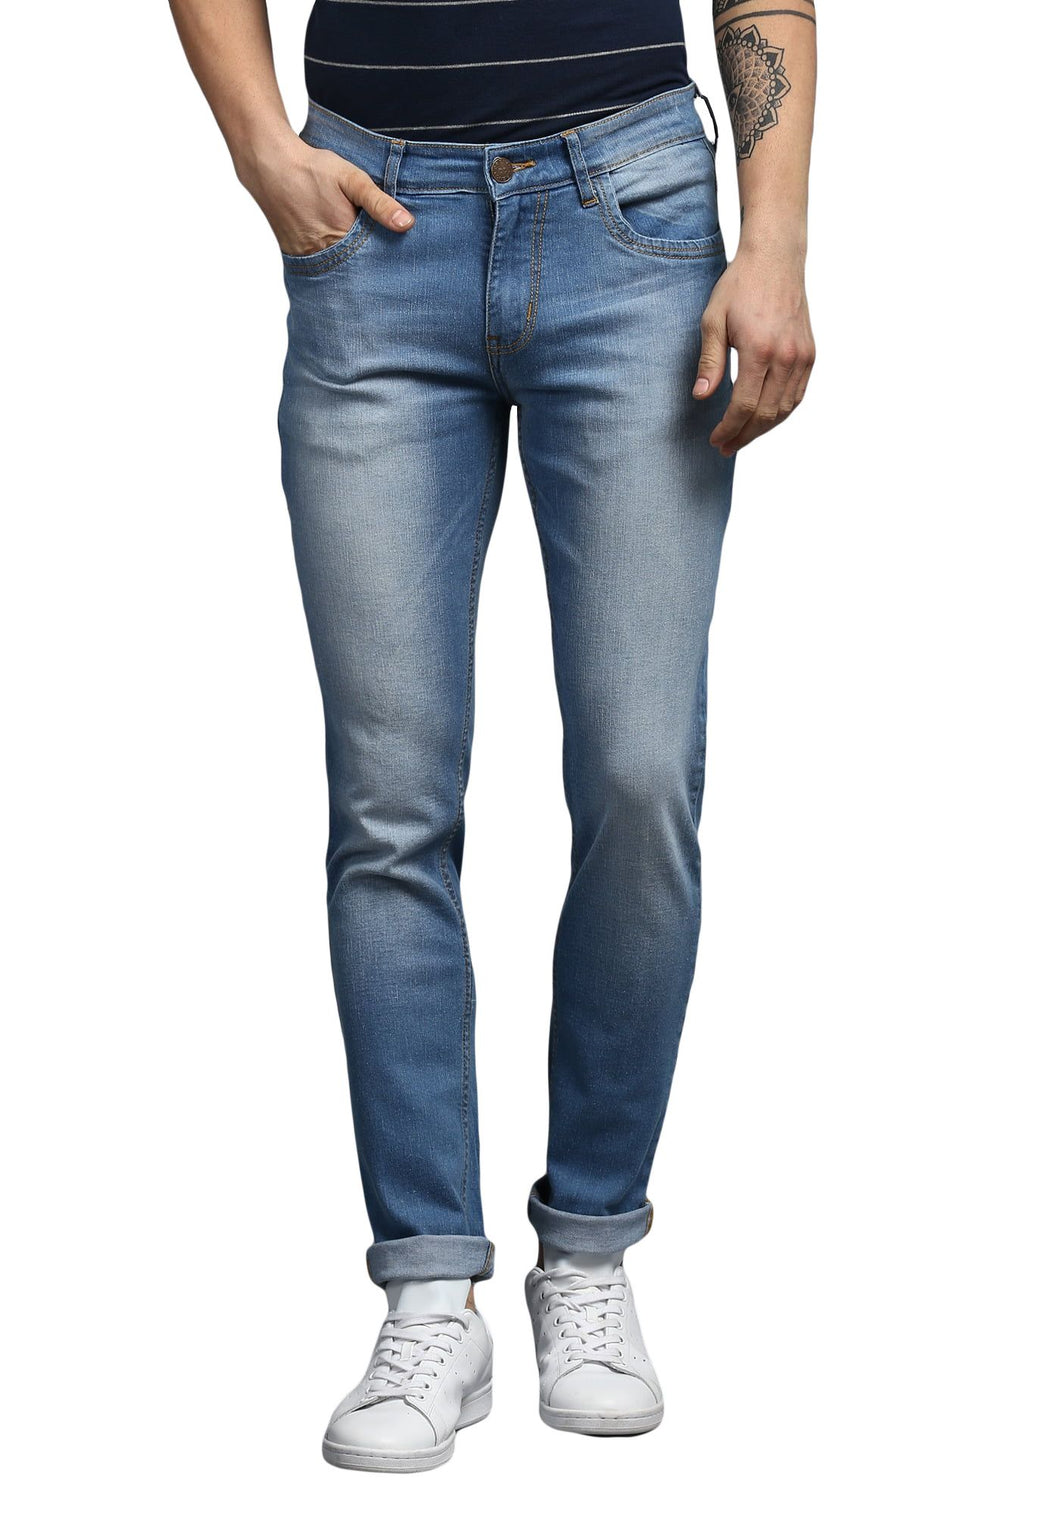 Blue Slim Fit Mid Rise Men's Stretch Jeans